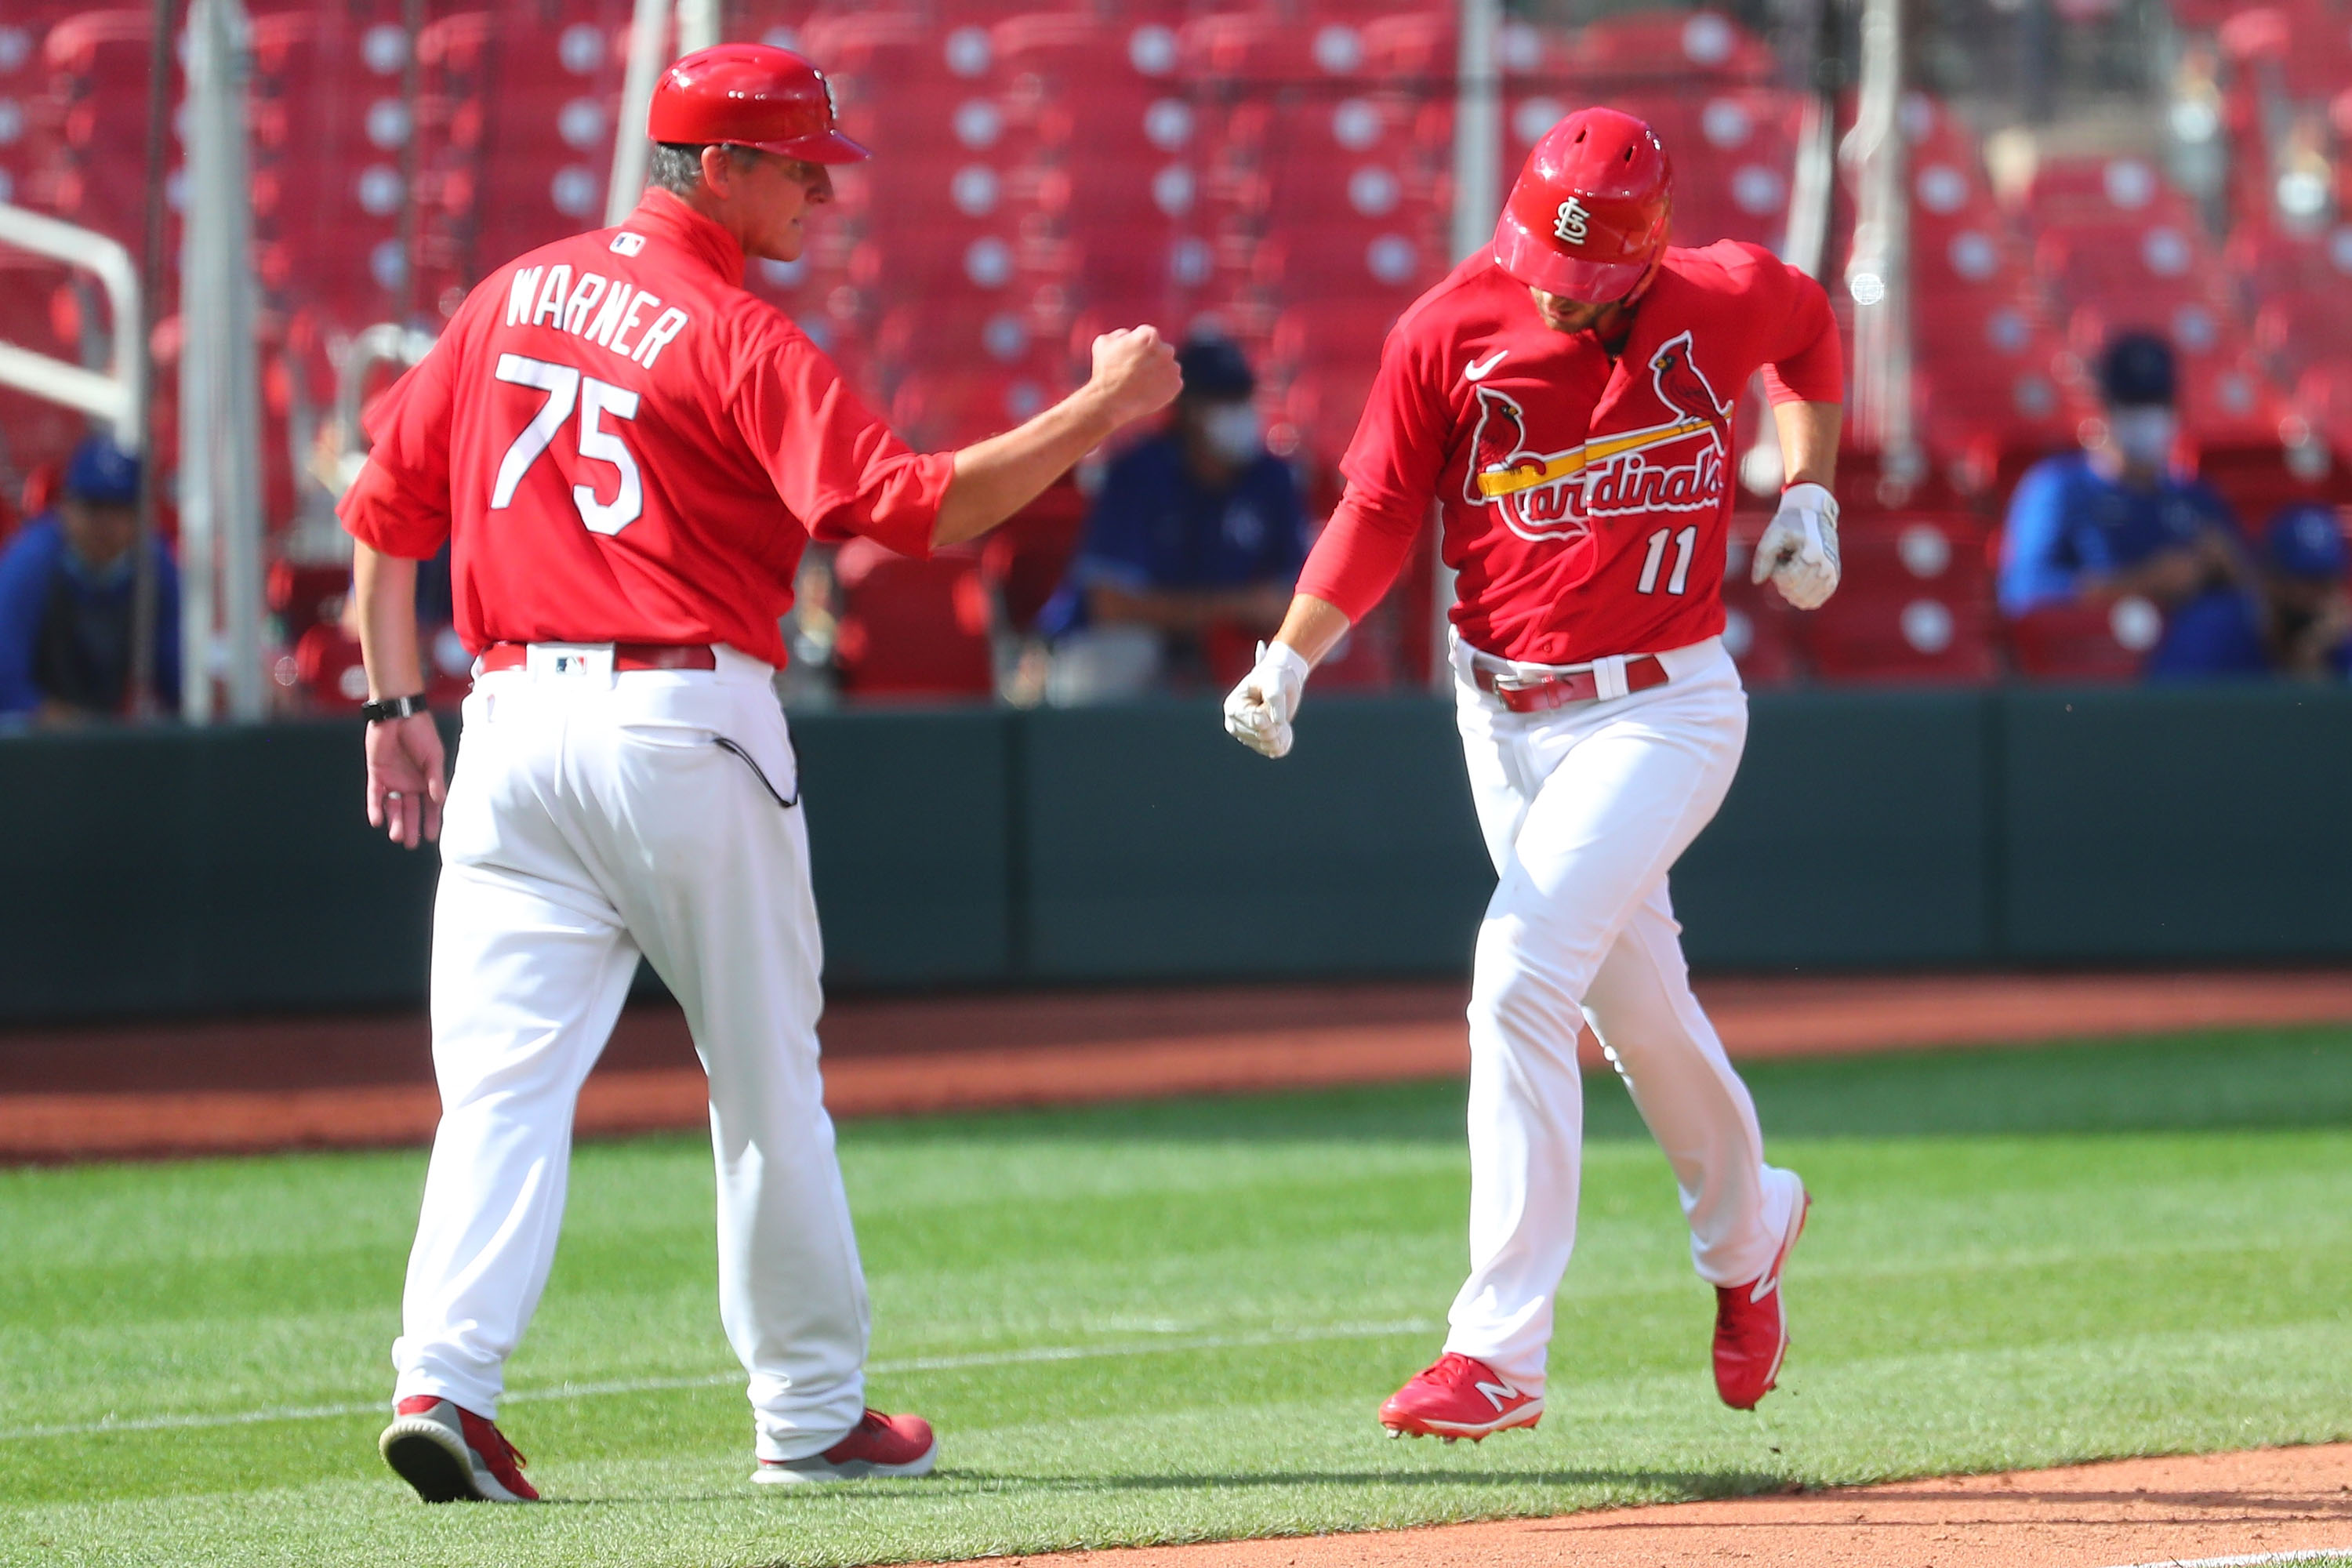 Paul DeJong #11 of the St. Louis Cardinals celebrates with base coach Ron Warner #75 of the St. Louis Cardinals after hitting a two-run home run against the Kansas City Royals at Busch Stadium on July 22, 2020 in St Louis, Missouri.